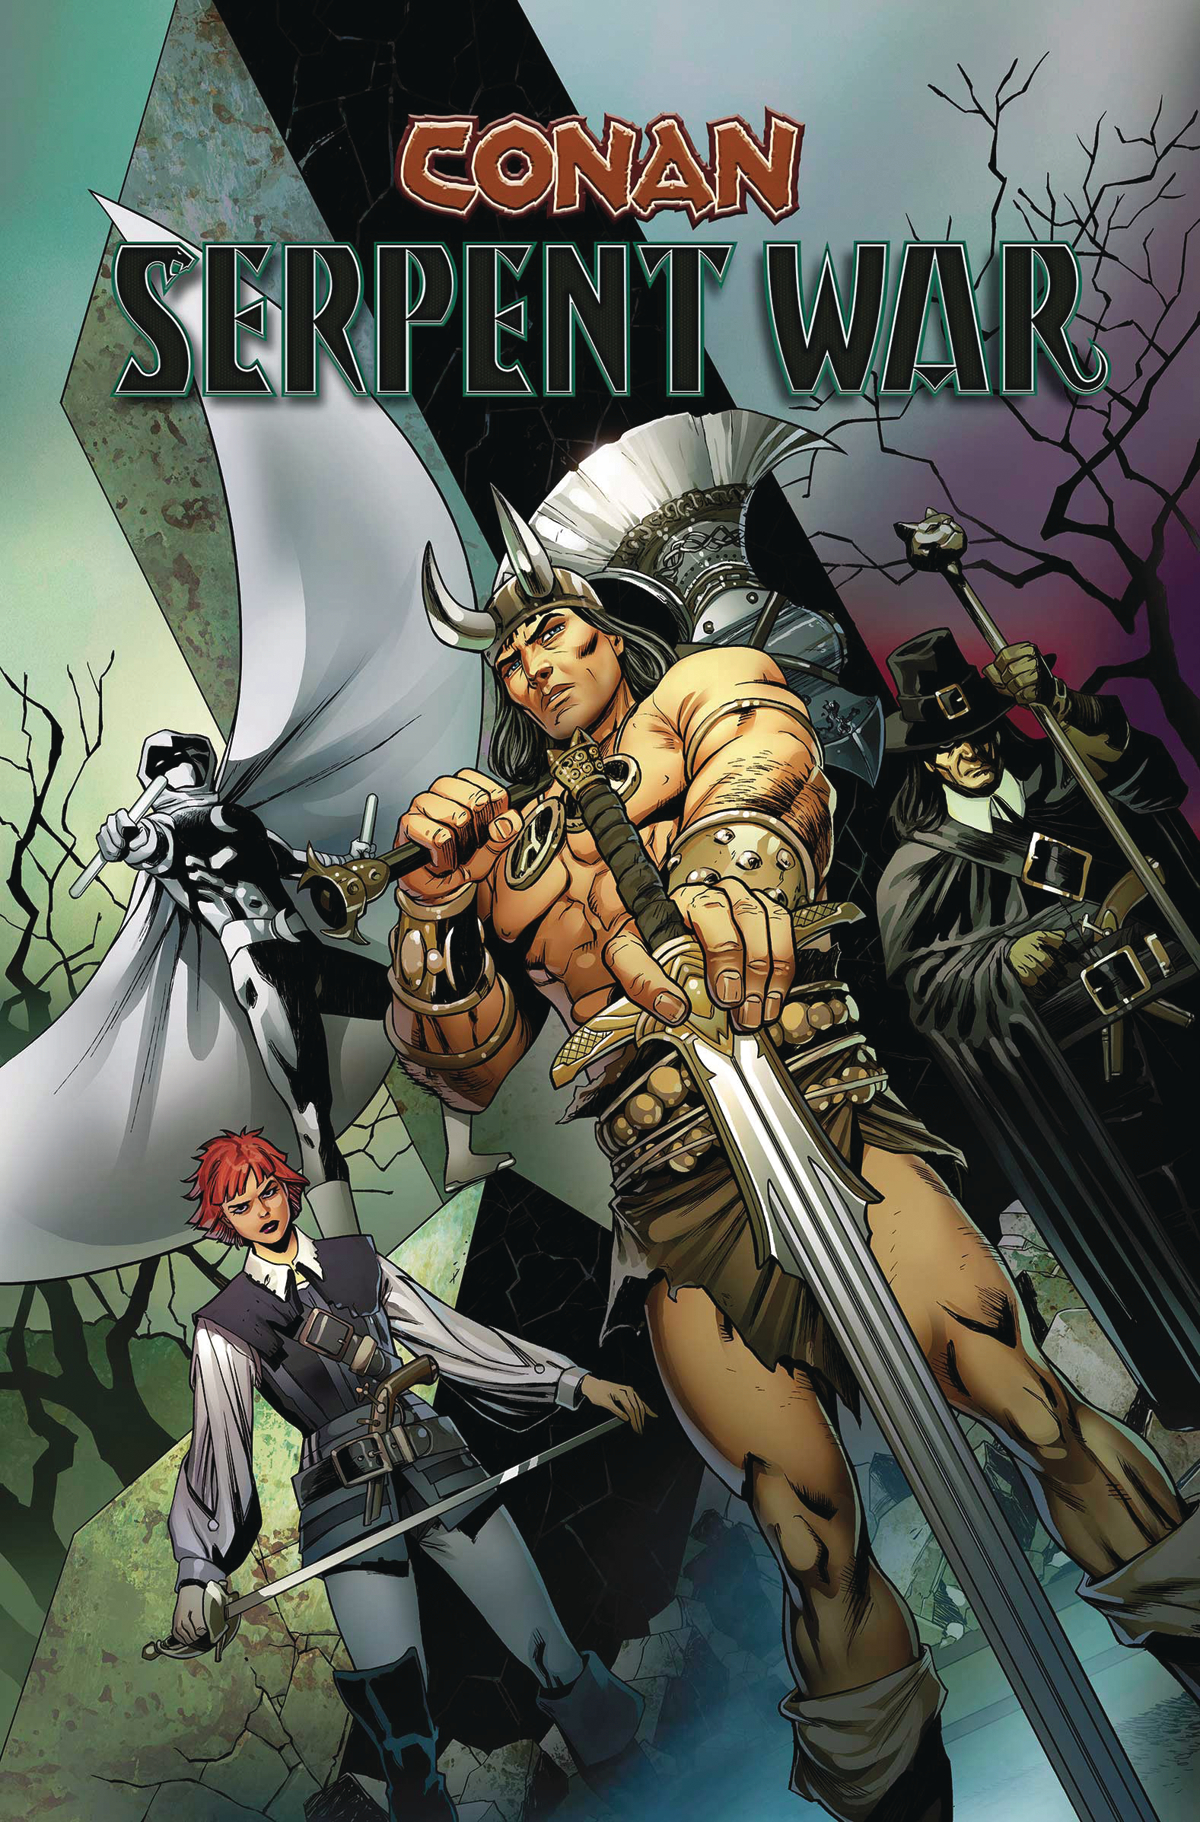 CONAN SERPENT WAR TP